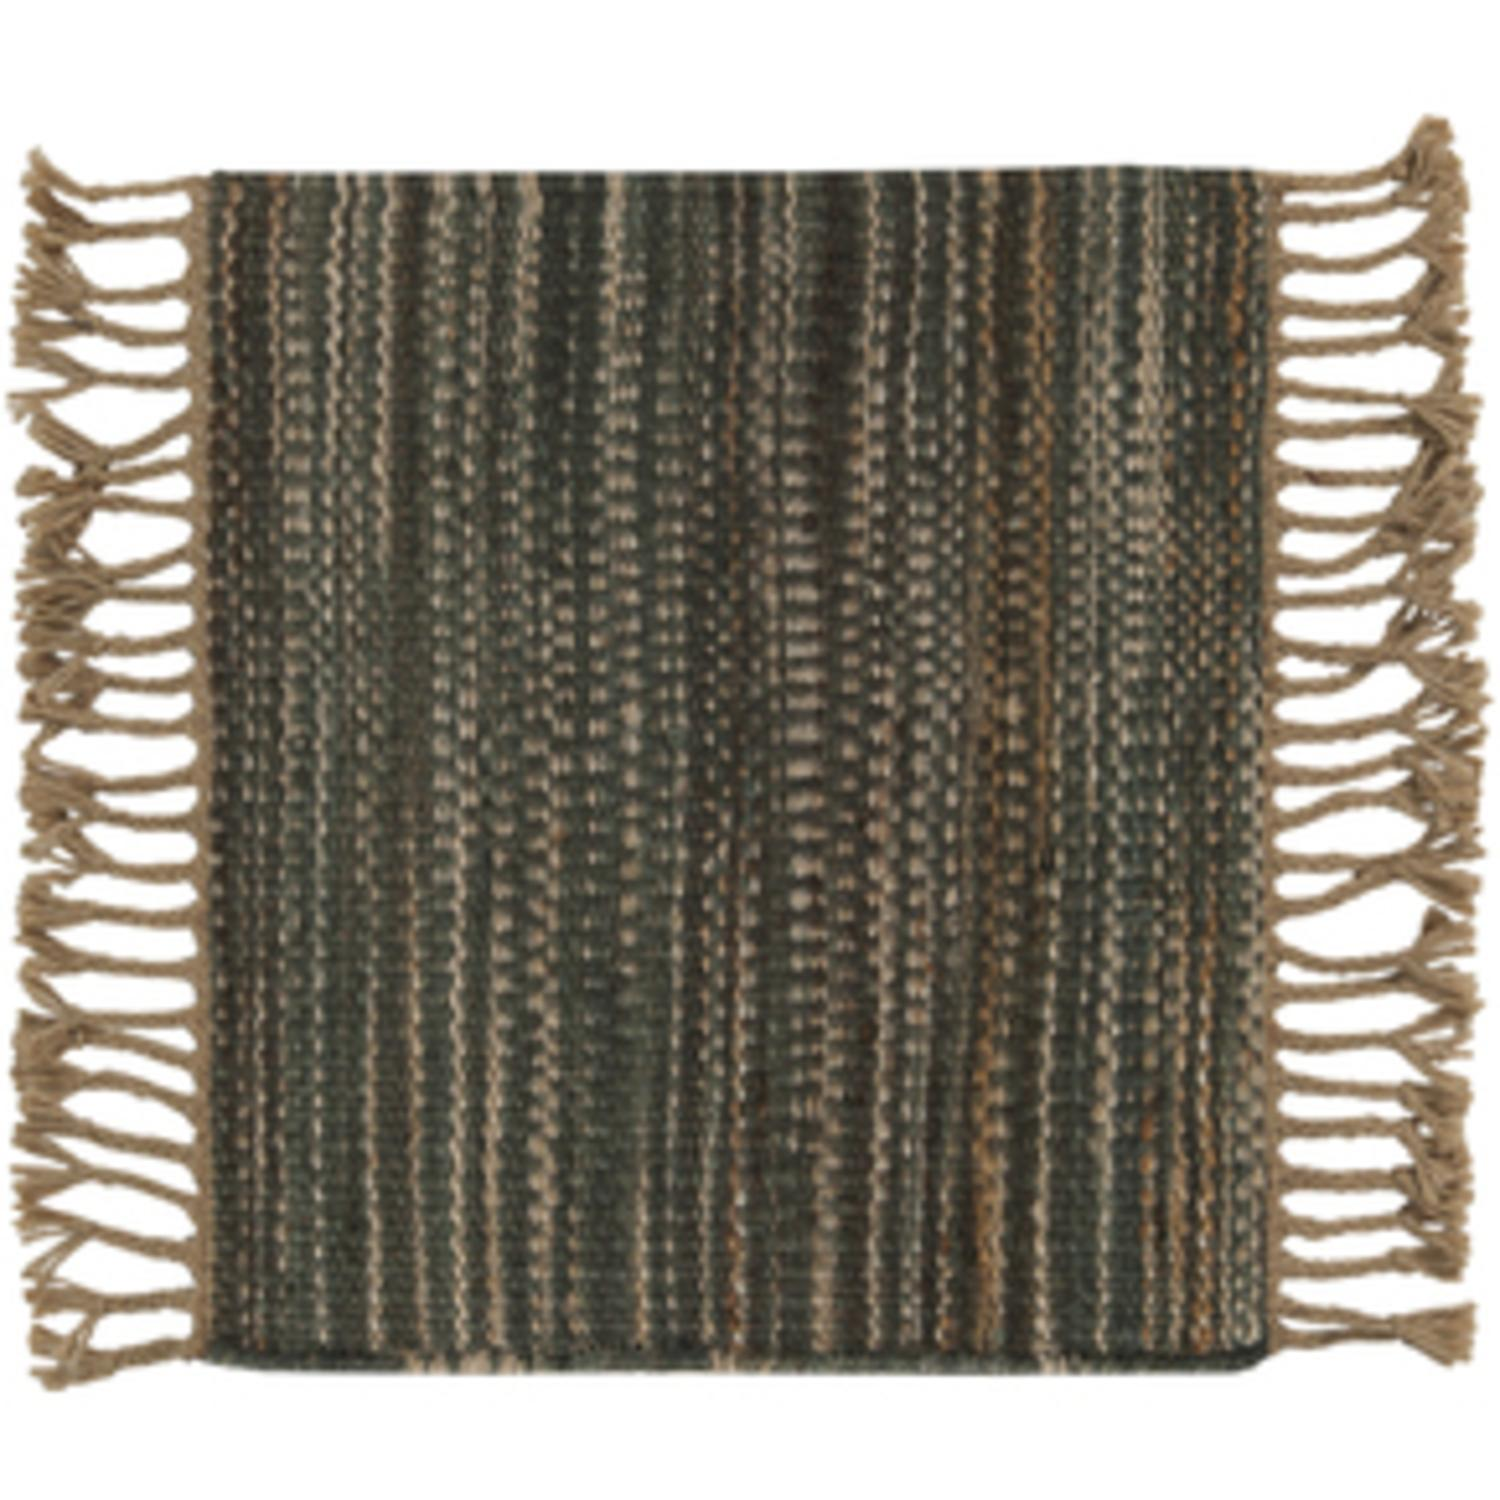 2.5' x 8' Vintage Style Green Area Throw Rug